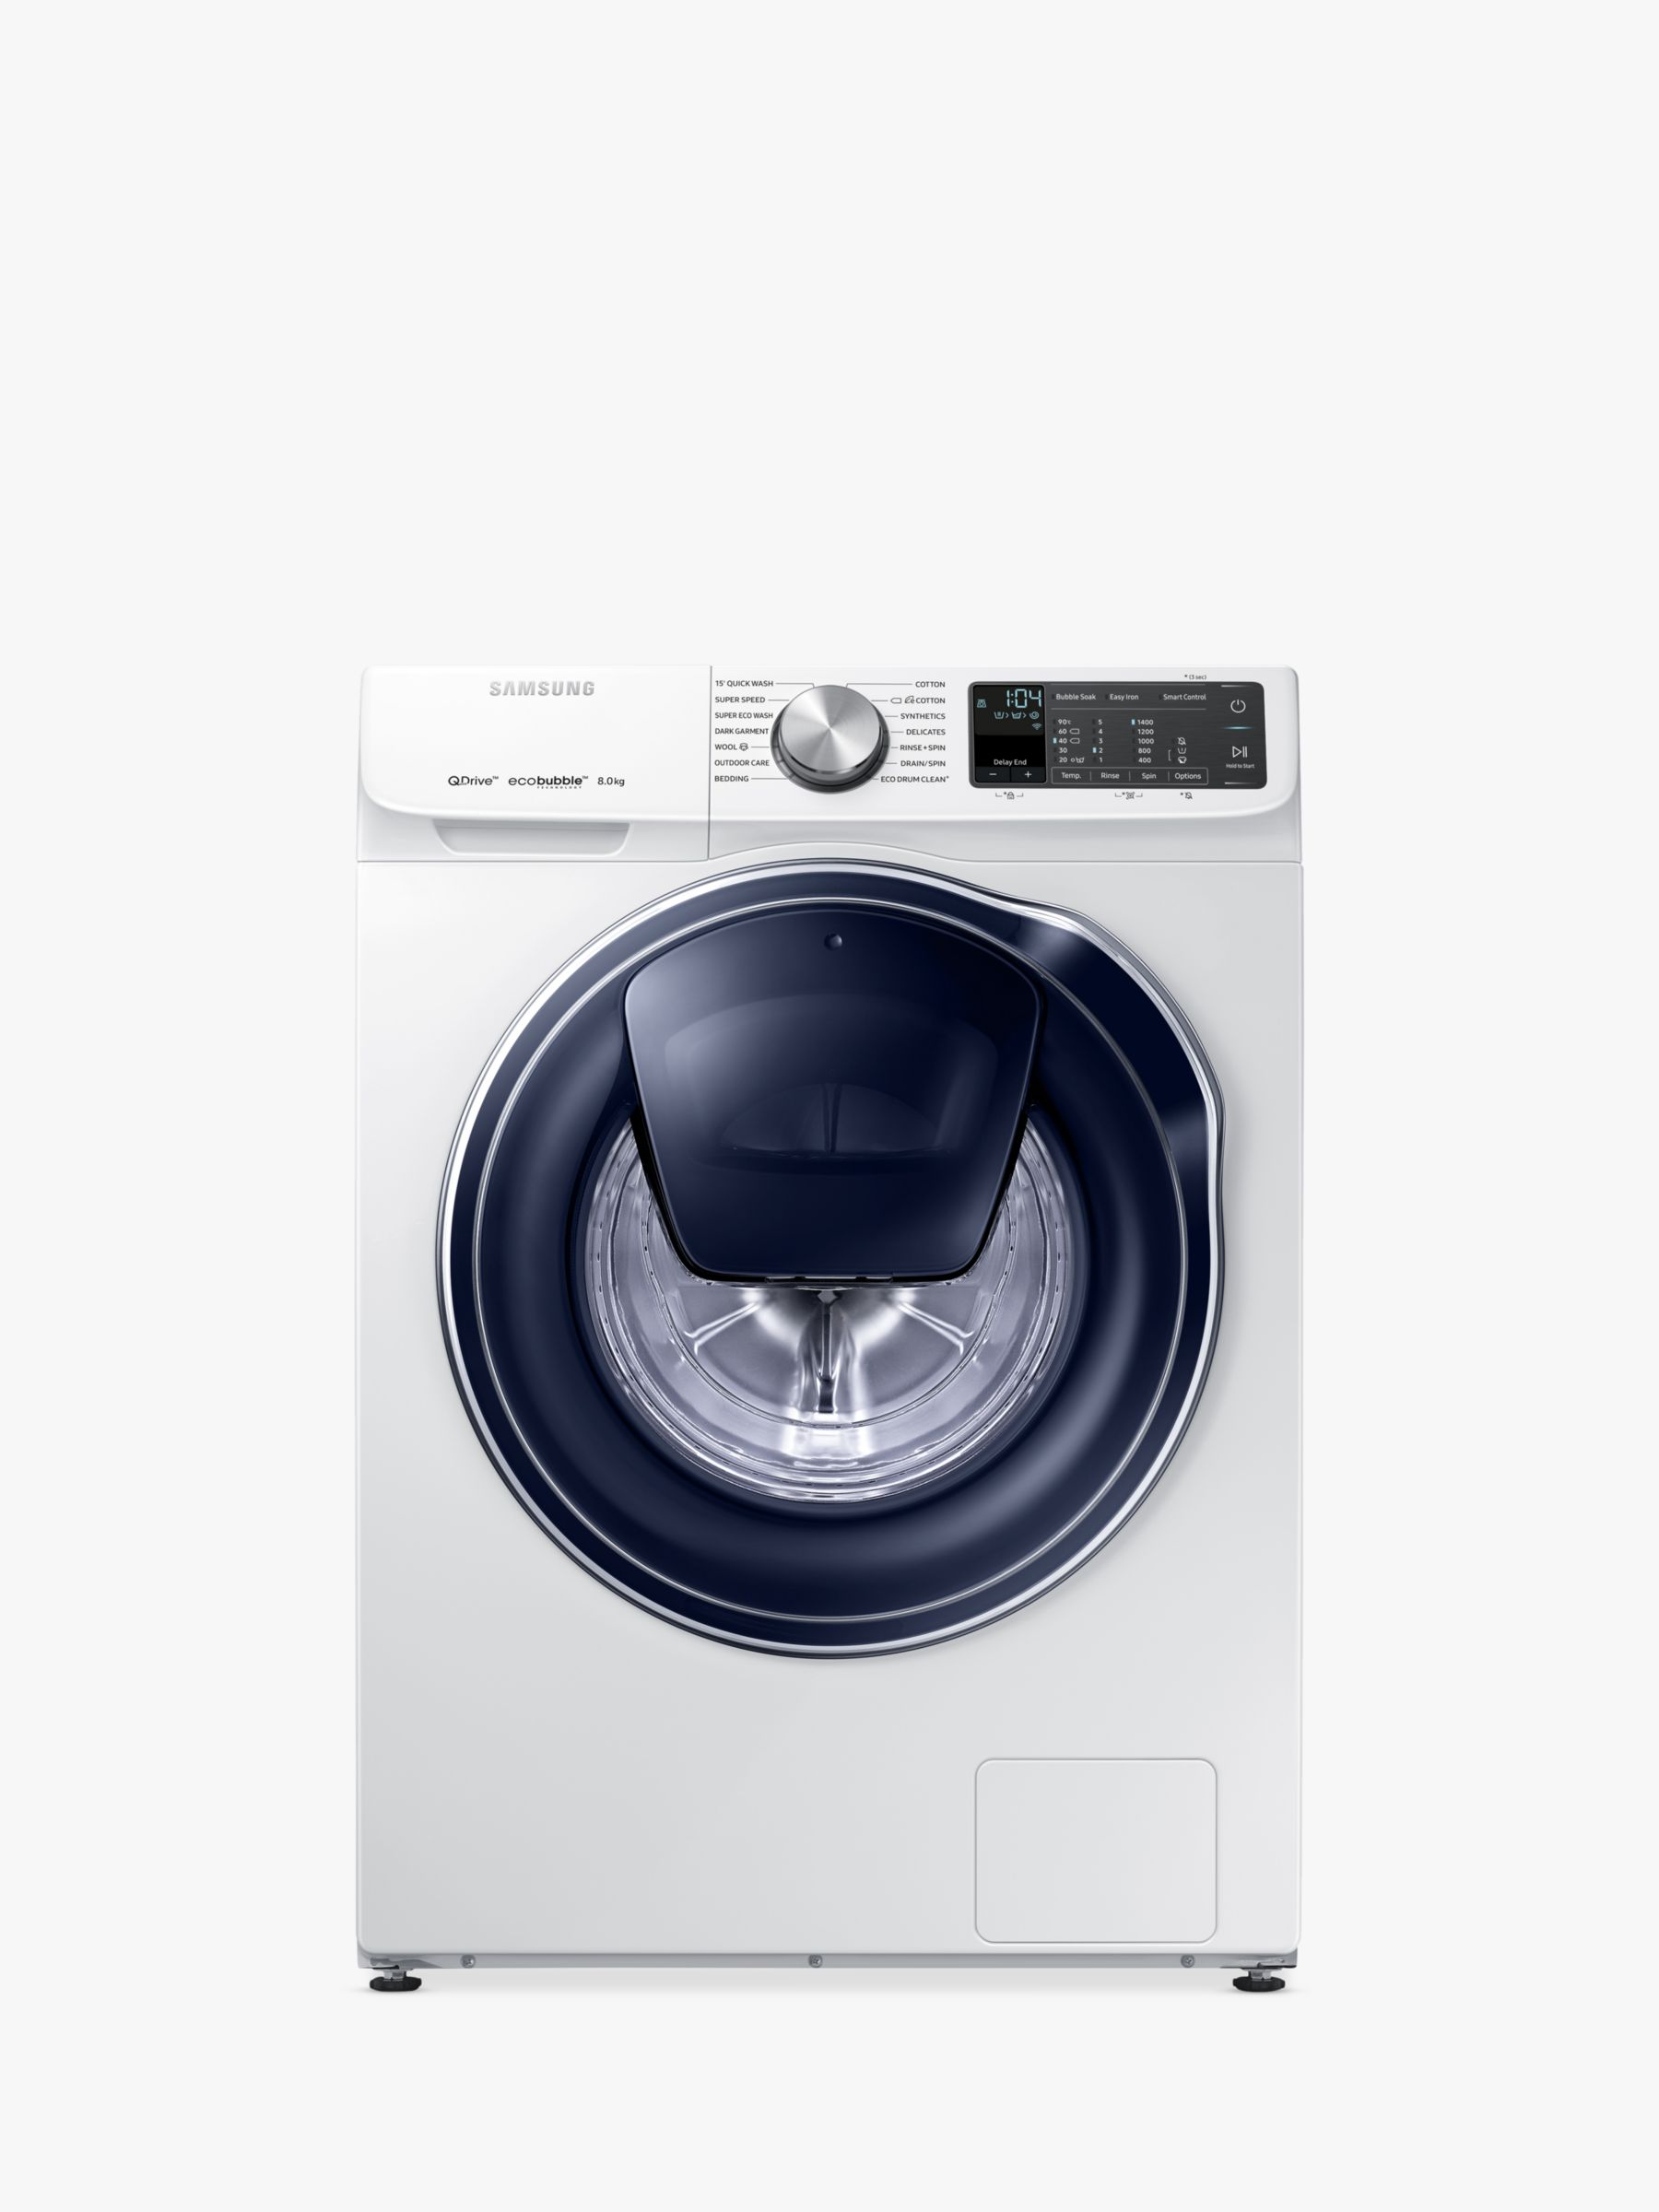 Samsung Samsung QuickDrive WW80M645OPM/EU Freestanding Washing Machine, 8kg Load, A+++ Energy Rating, 1400rpm Spin, White